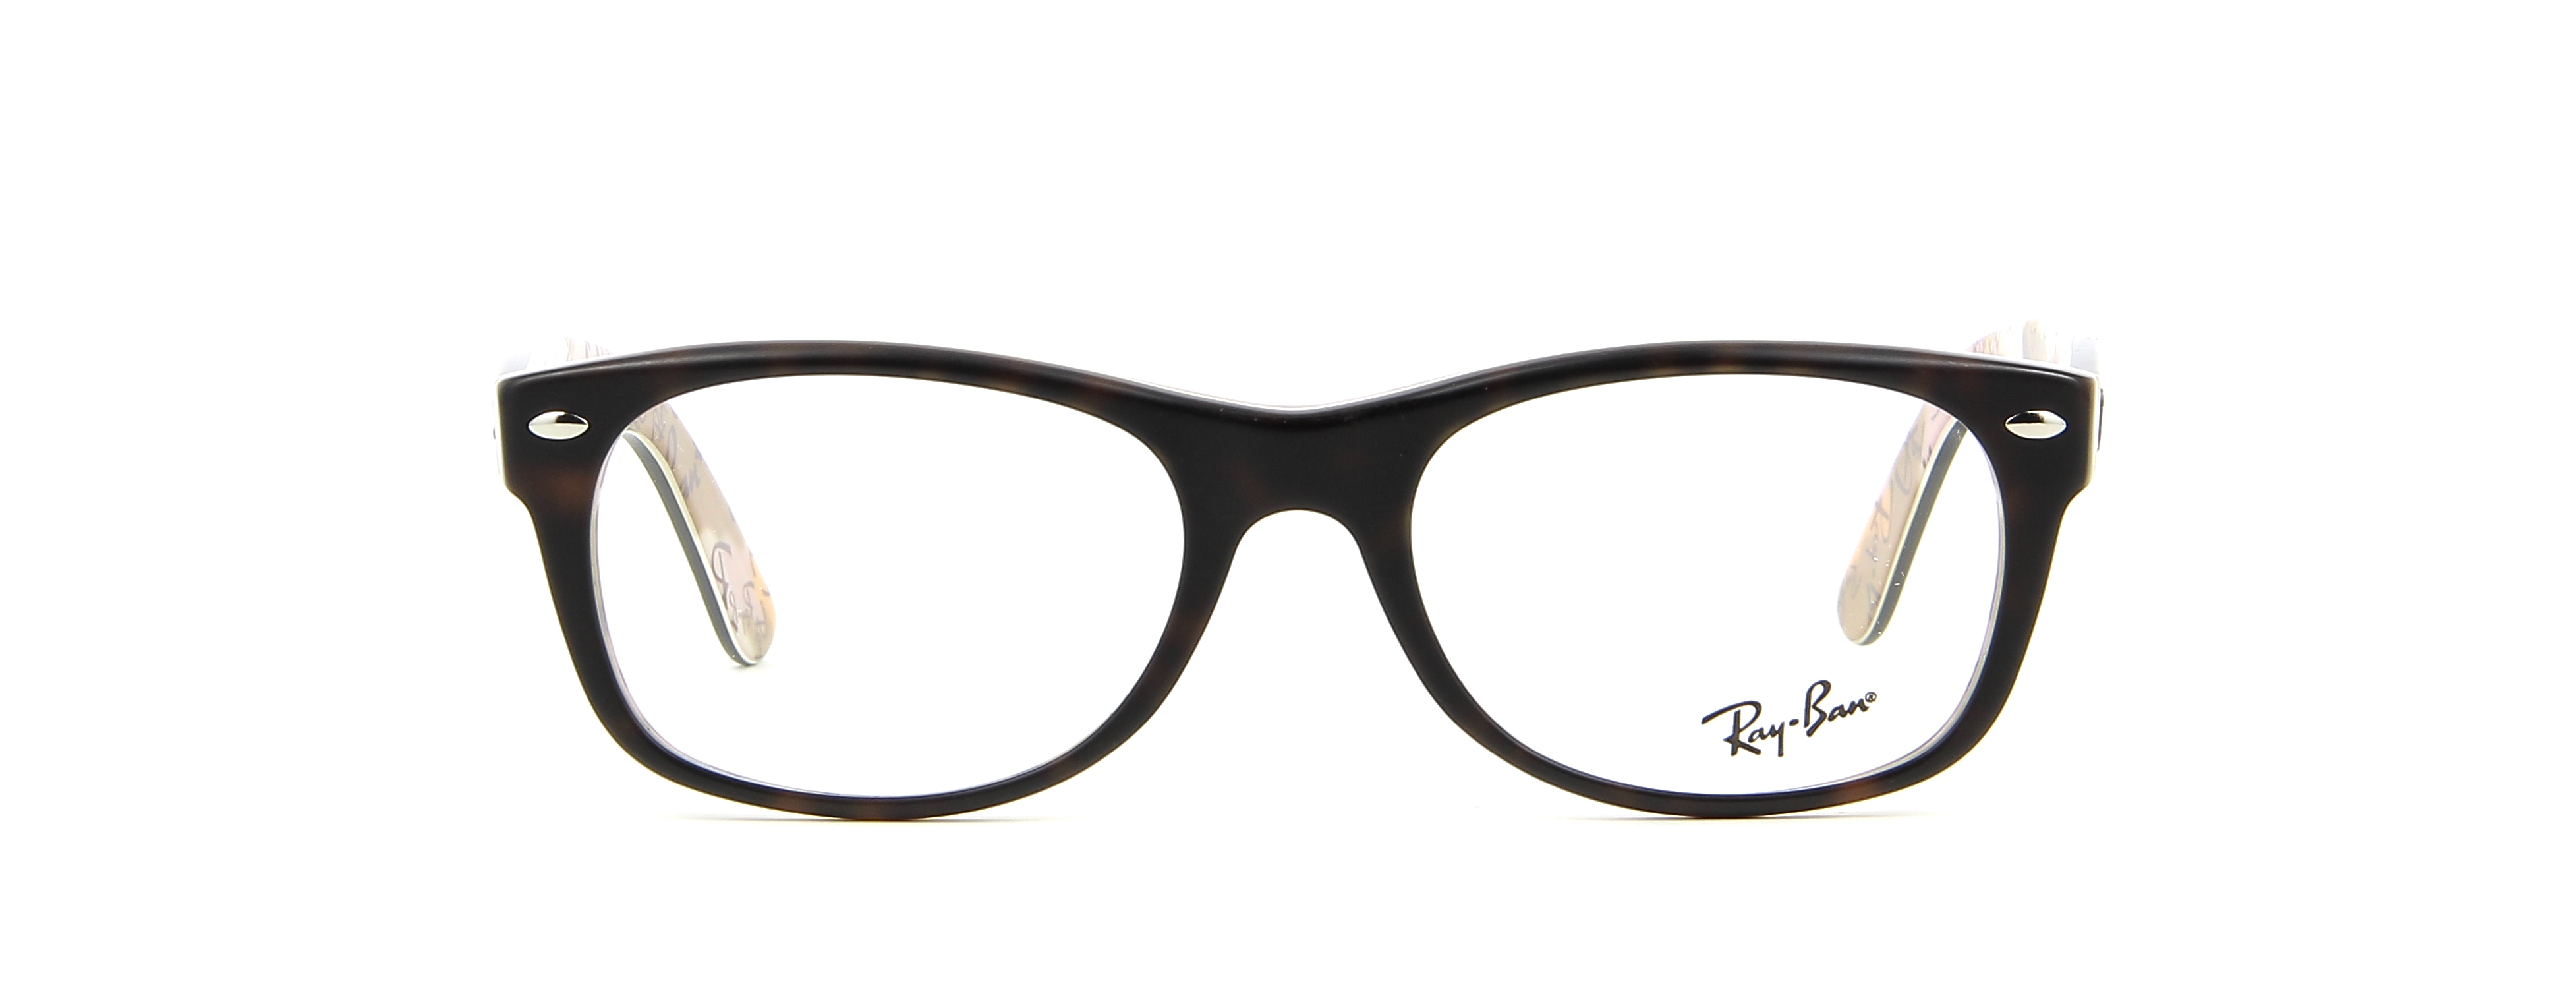 8e57a2d98beff Ray Ban Rx 5184 Tortoise « Heritage Malta